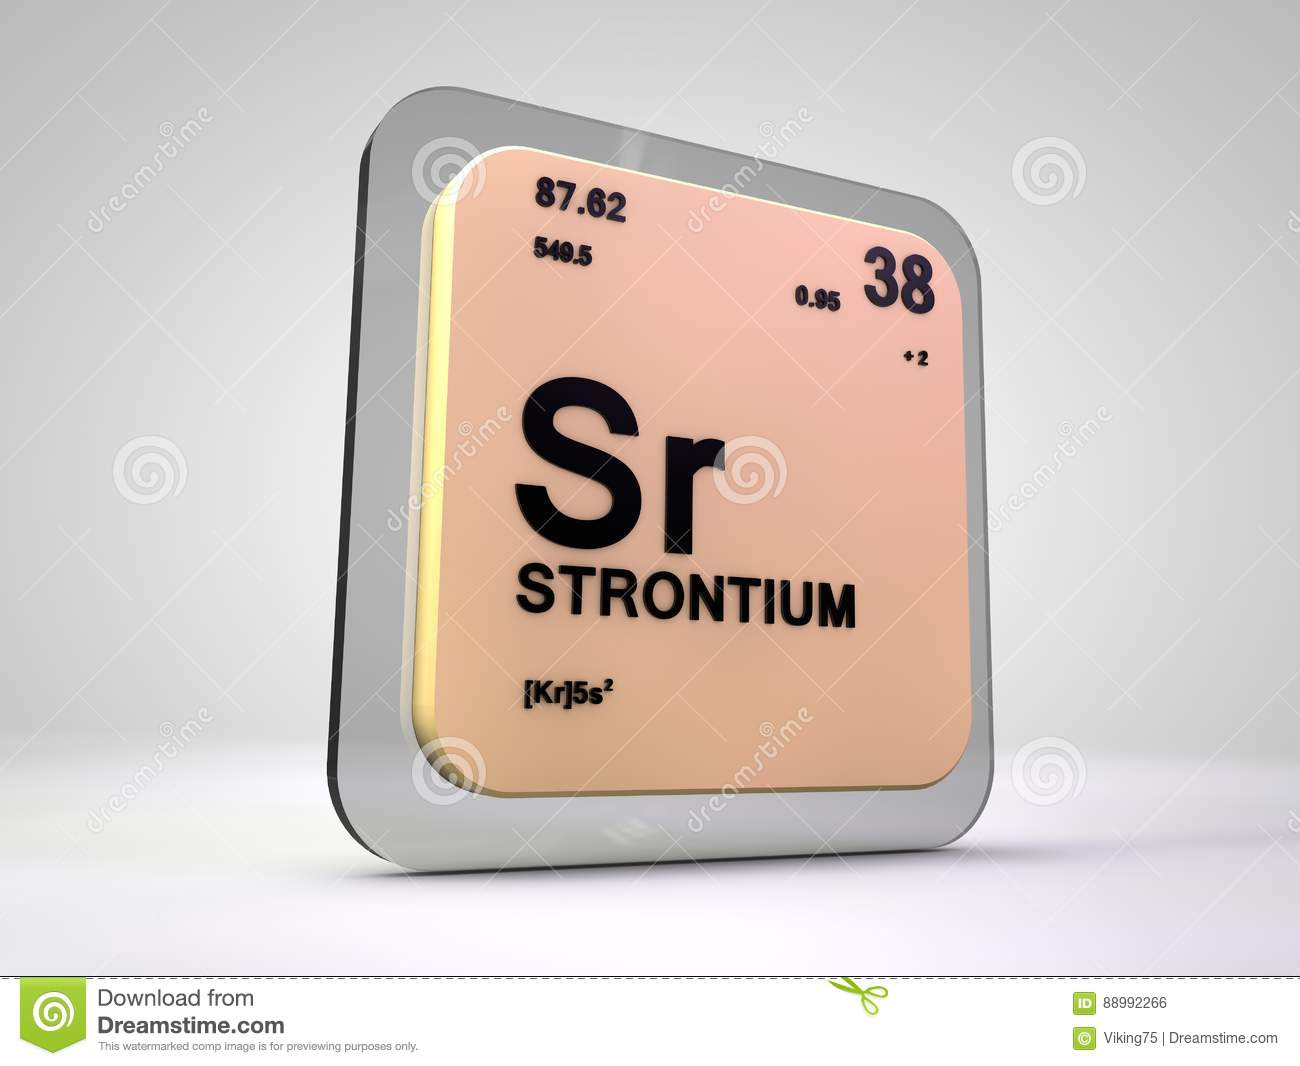 Strontium sr chemical element periodic table stock strontium sr chemical element periodic table gamestrikefo Gallery